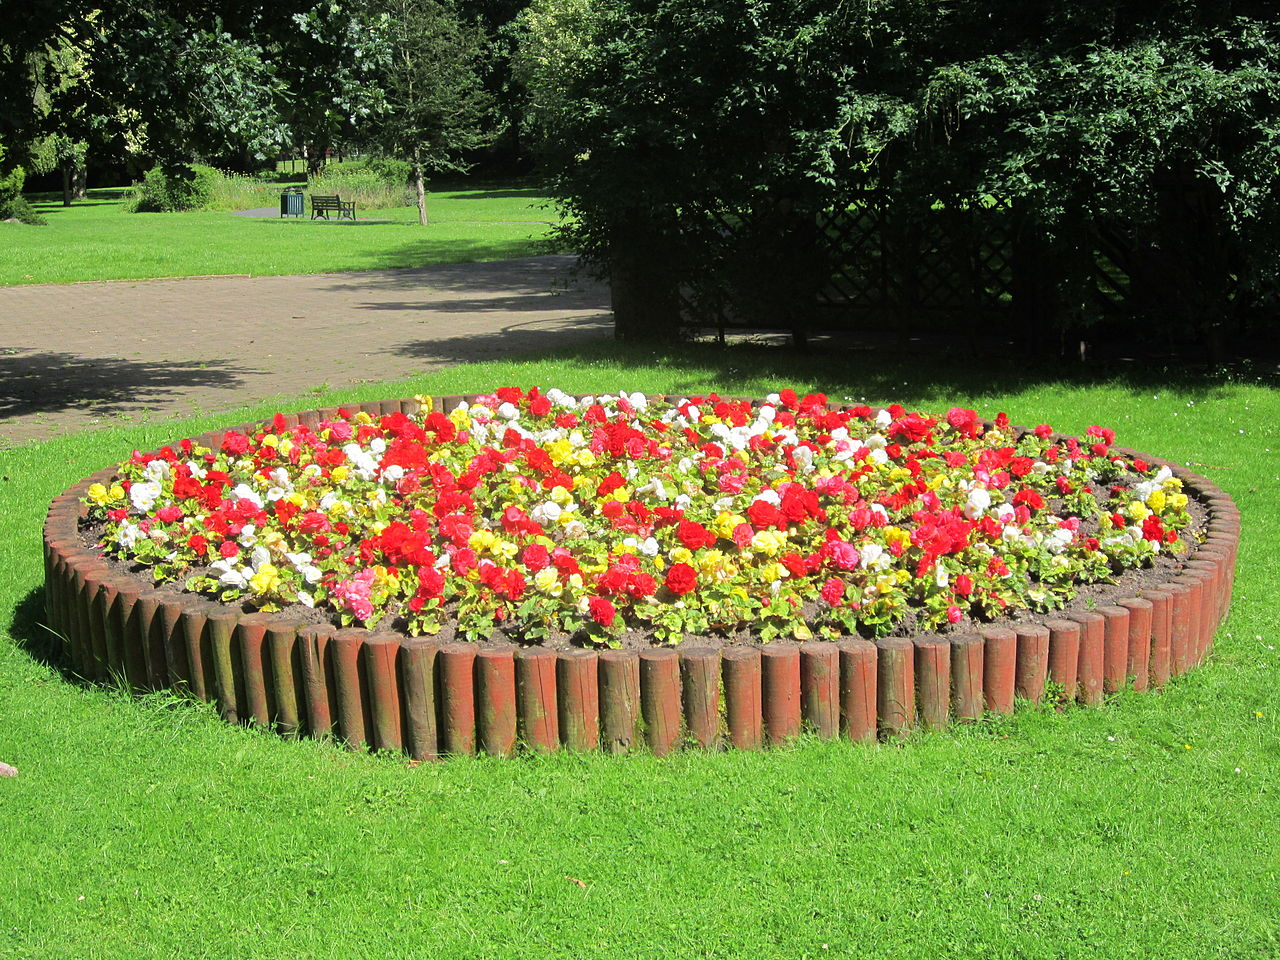 File:Flowerbed at St Chad's Gardens, Kirkby.JPG ...